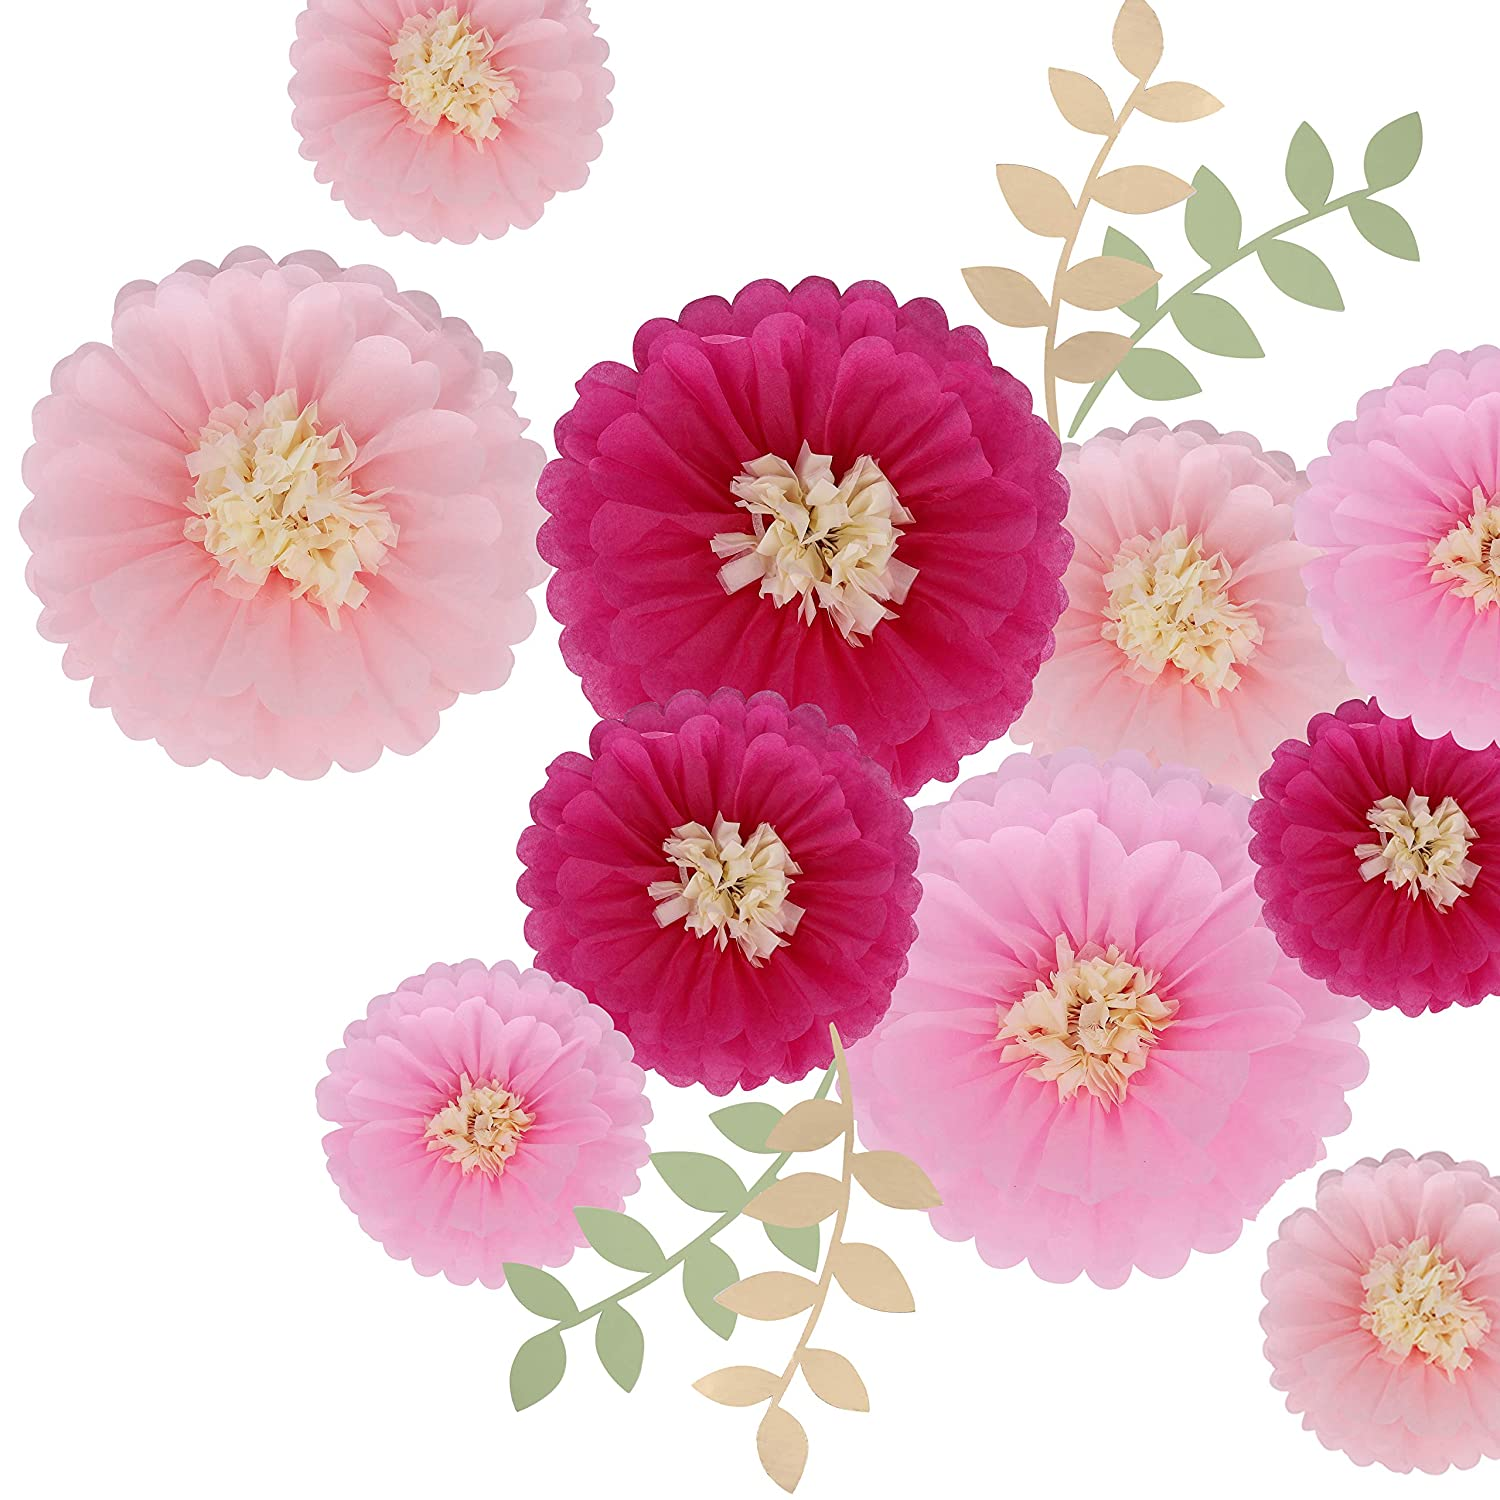 Wedding Backdrop Archway Centerpiece DOYOLLA 12 Pieces Pink Paper Flowers Tissue Paper Chrysanth Flower Decorations for Wall Nursery Wall Decoration